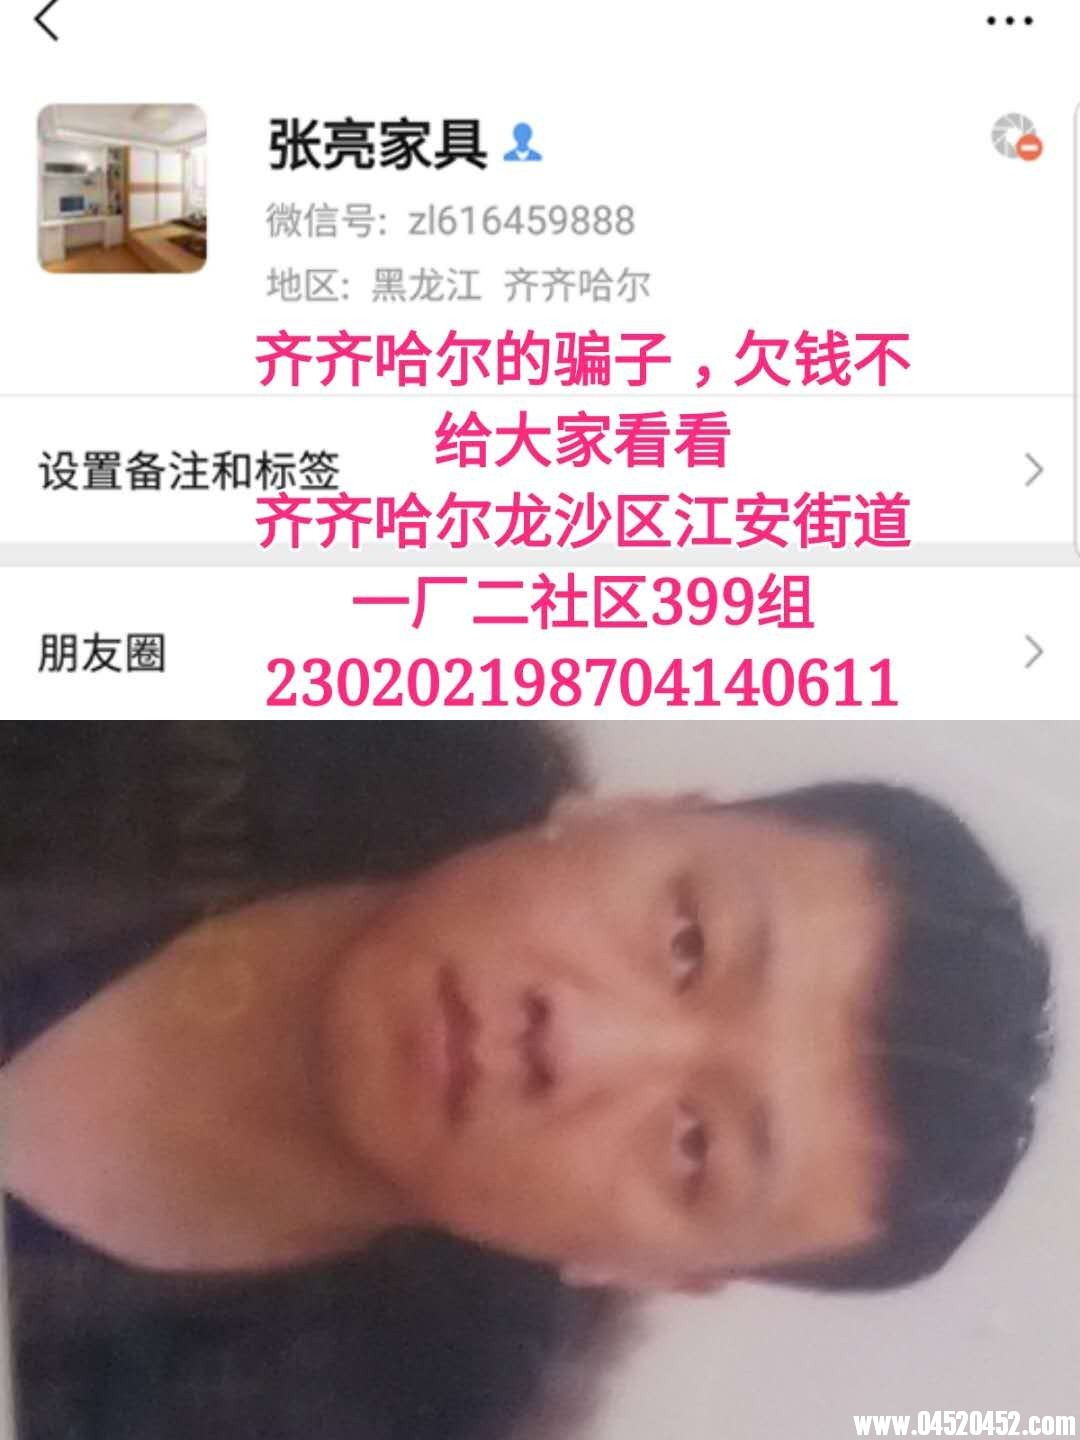 wechat_upload15512763655c76994de2866